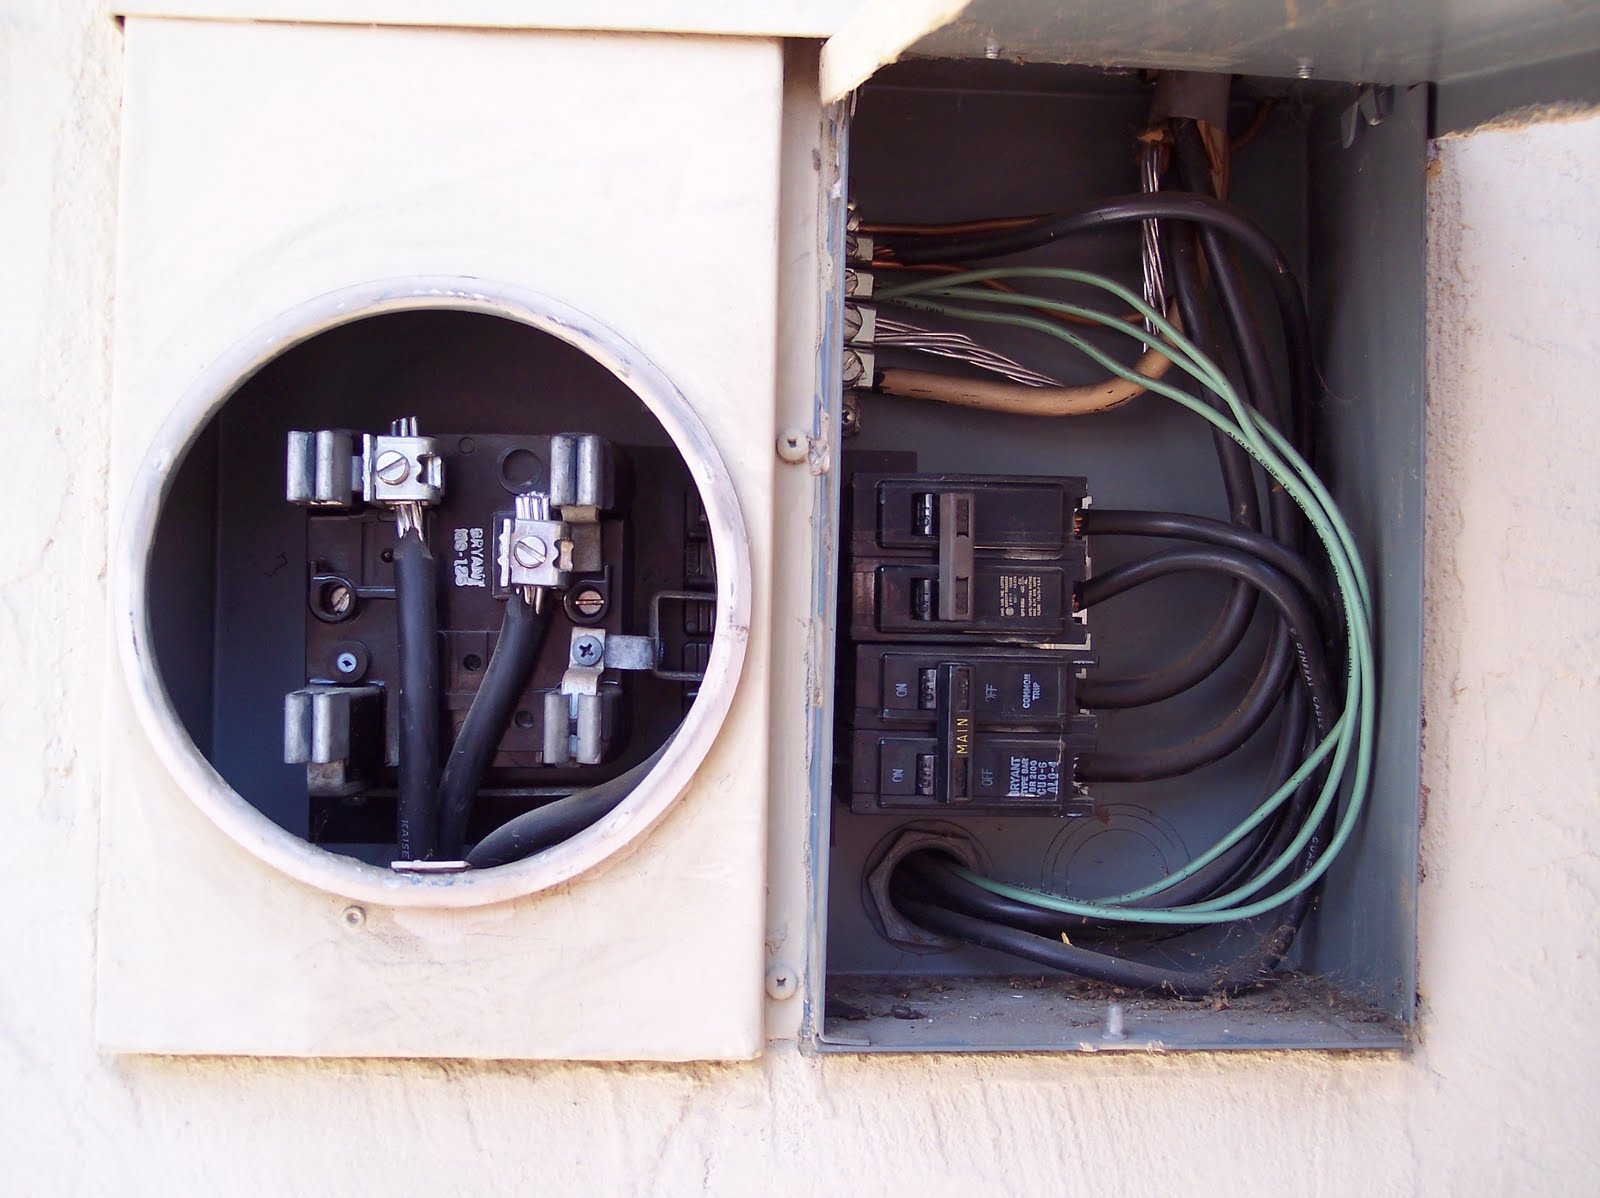 electric meter bryant ms 125 needs the load socket and bus bar replaced aluminum wires from main [ 1600 x 1198 Pixel ]